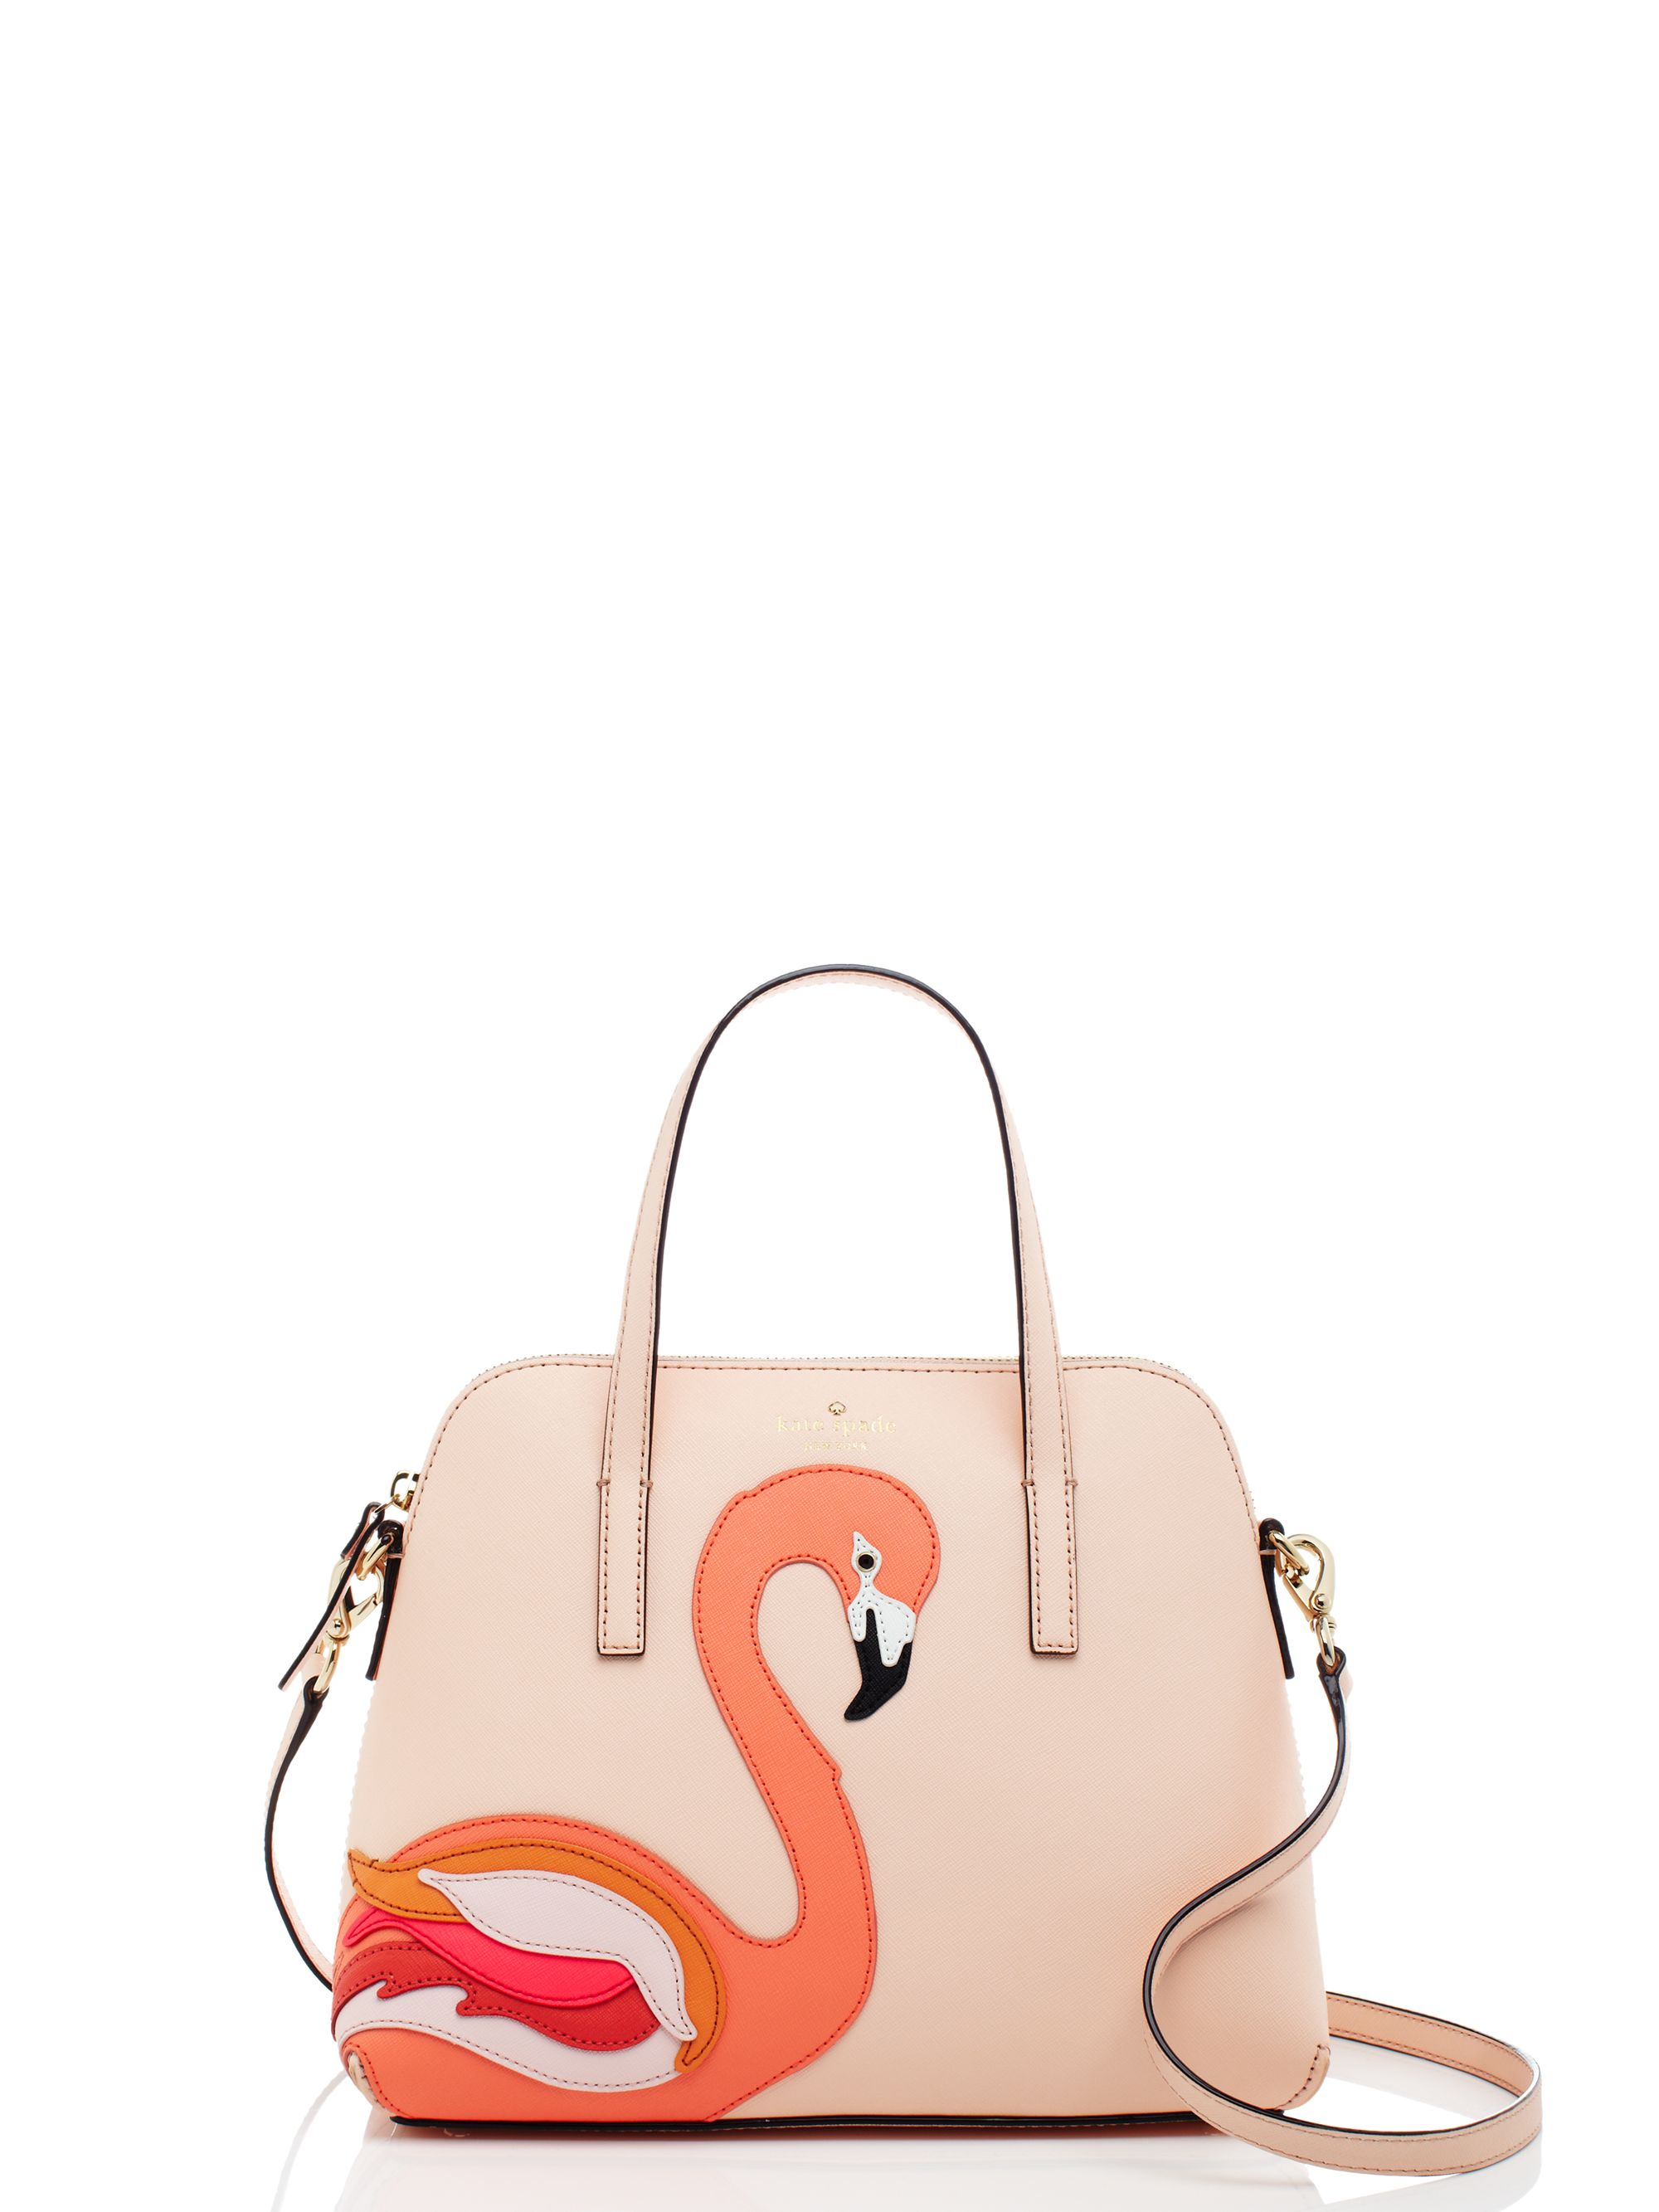 Kate Spade New York Strut Your Stuff Flamingo Applique